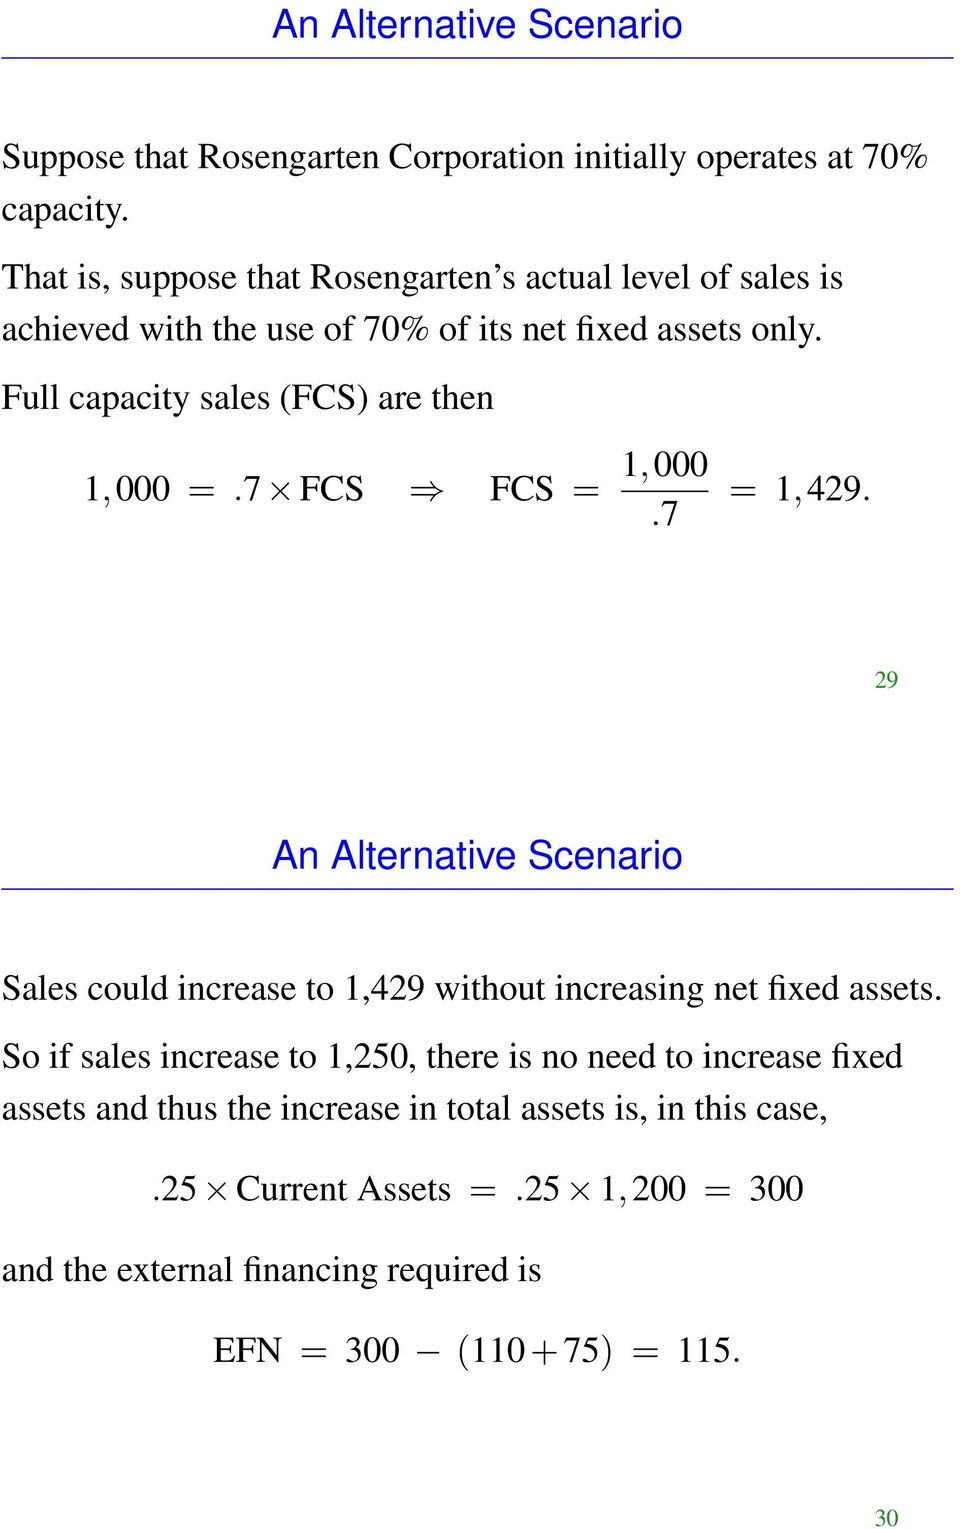 Full capacity sales (FCS) are then 1,000 =.7 FCS FCS = 1,000.7 = 1,429.